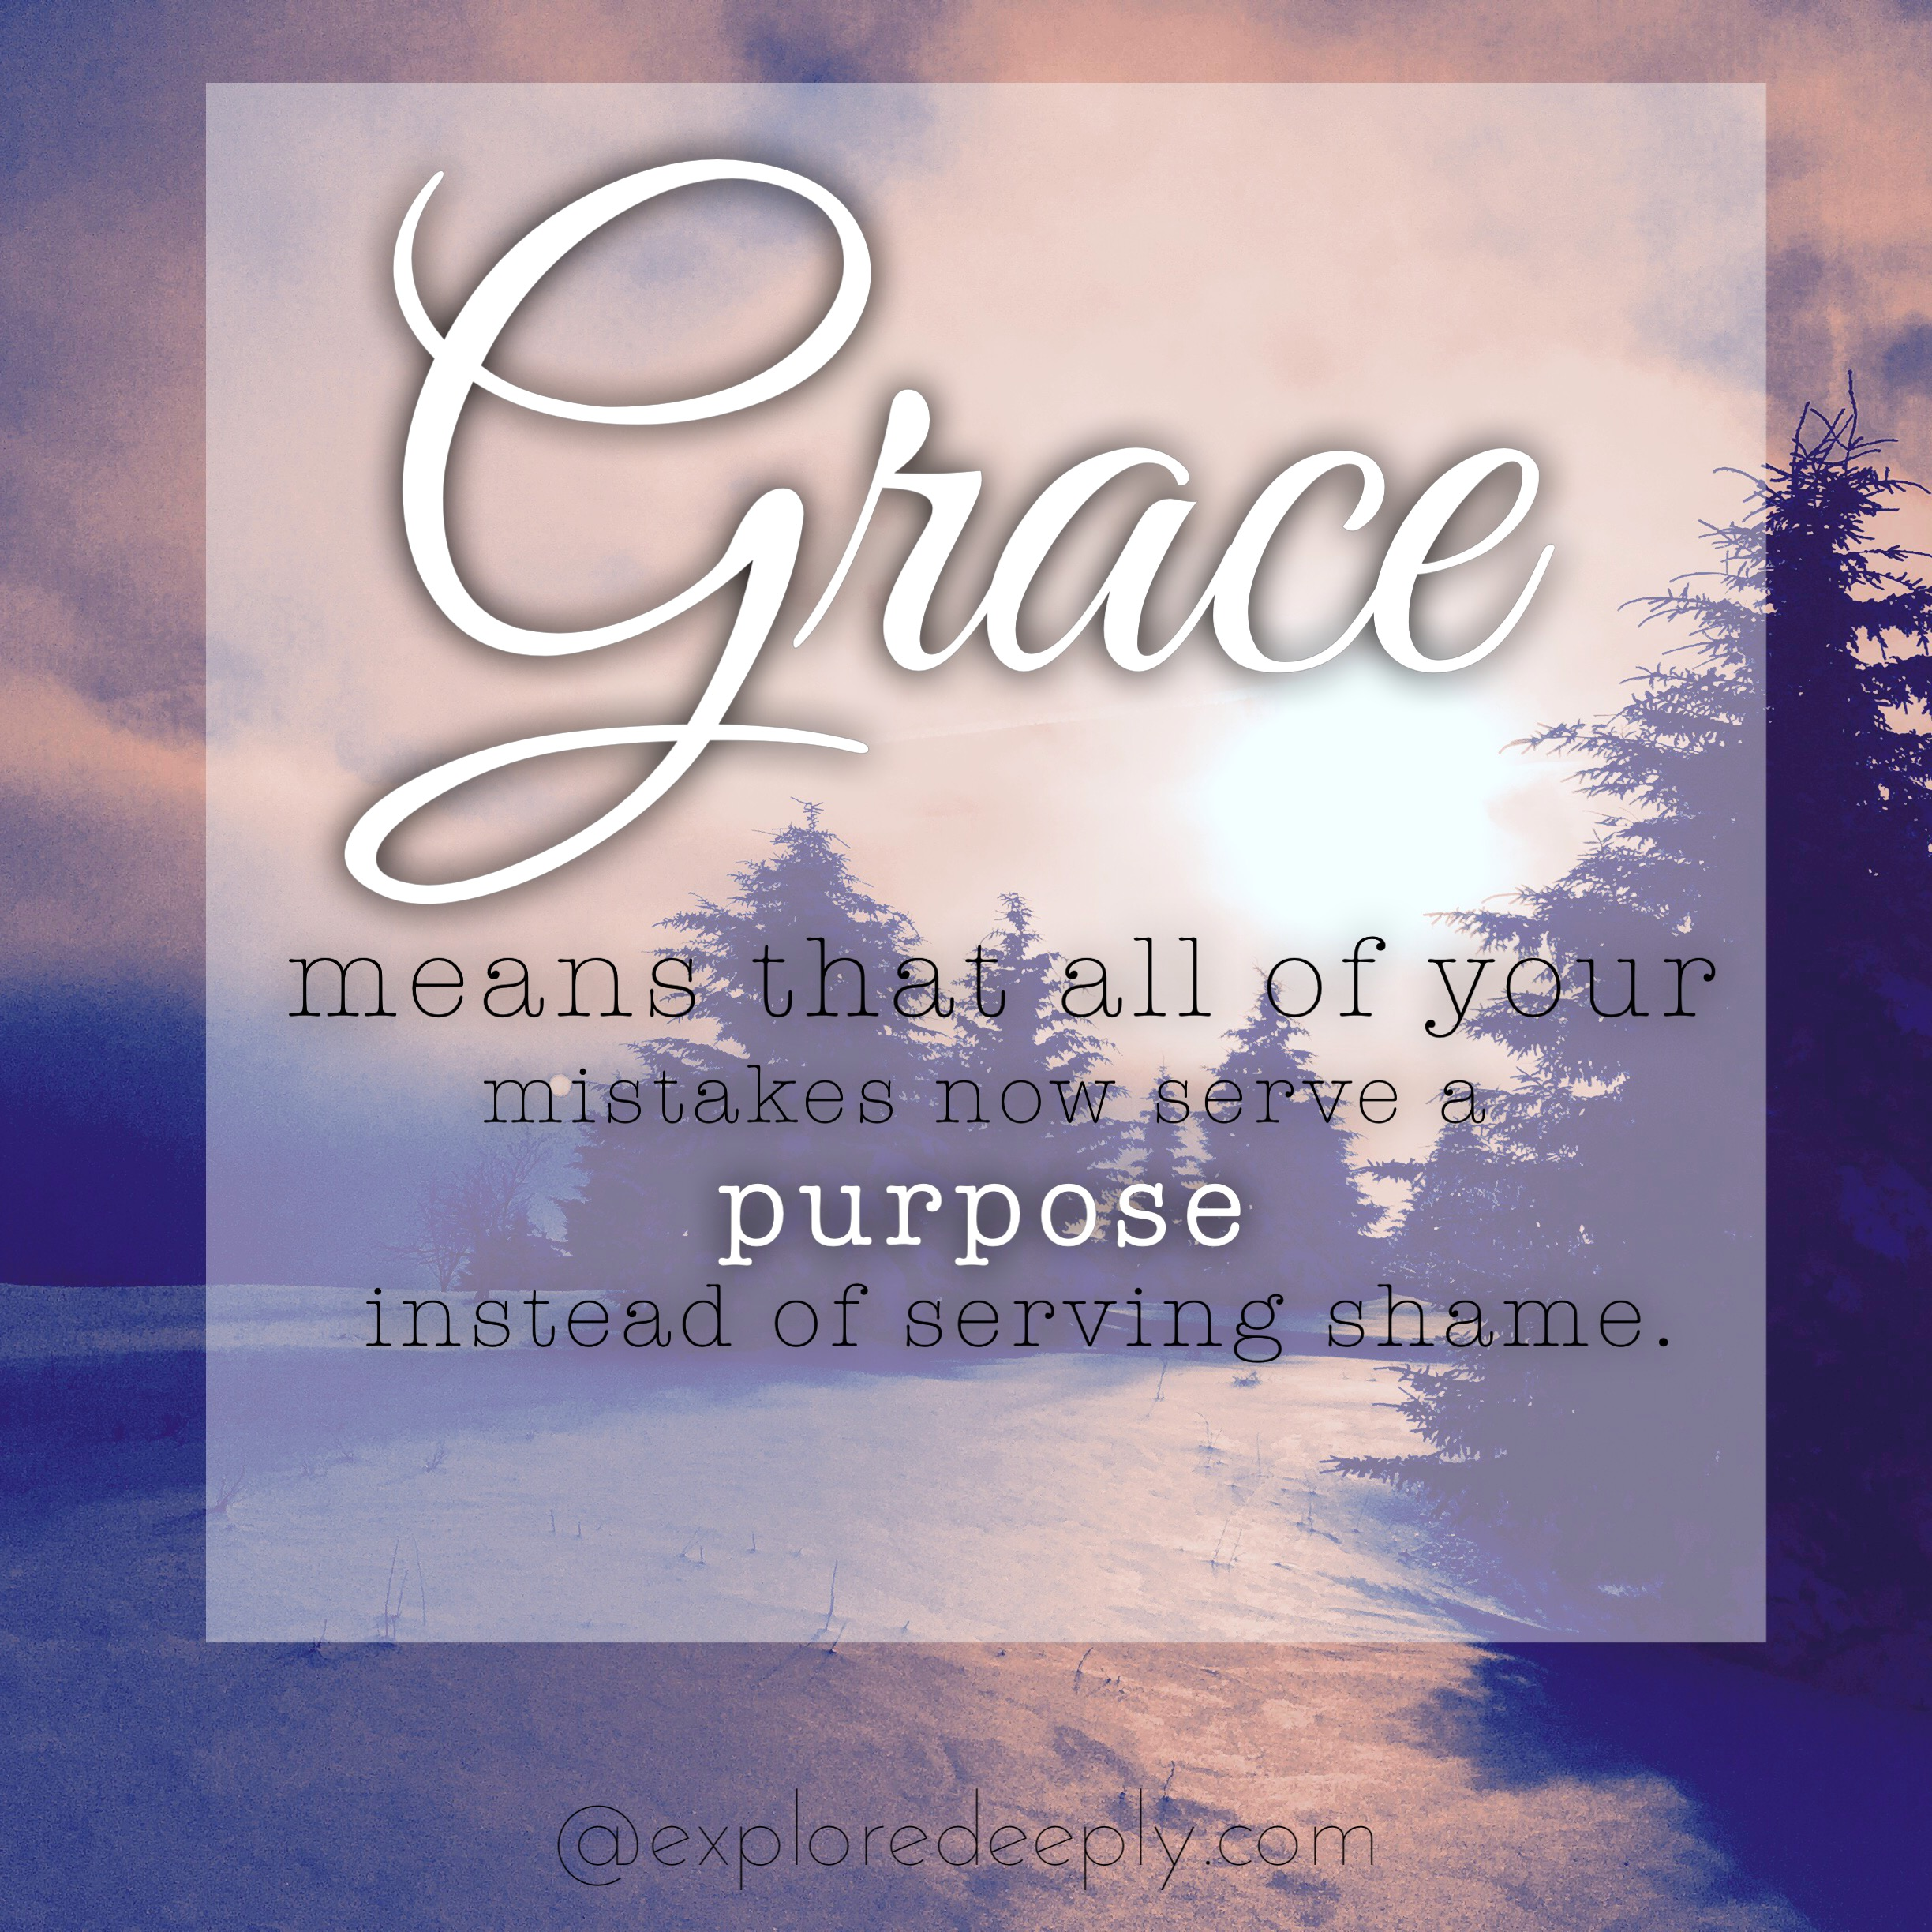 grace means that all your mistakes now serve a purpose instead of serving shame